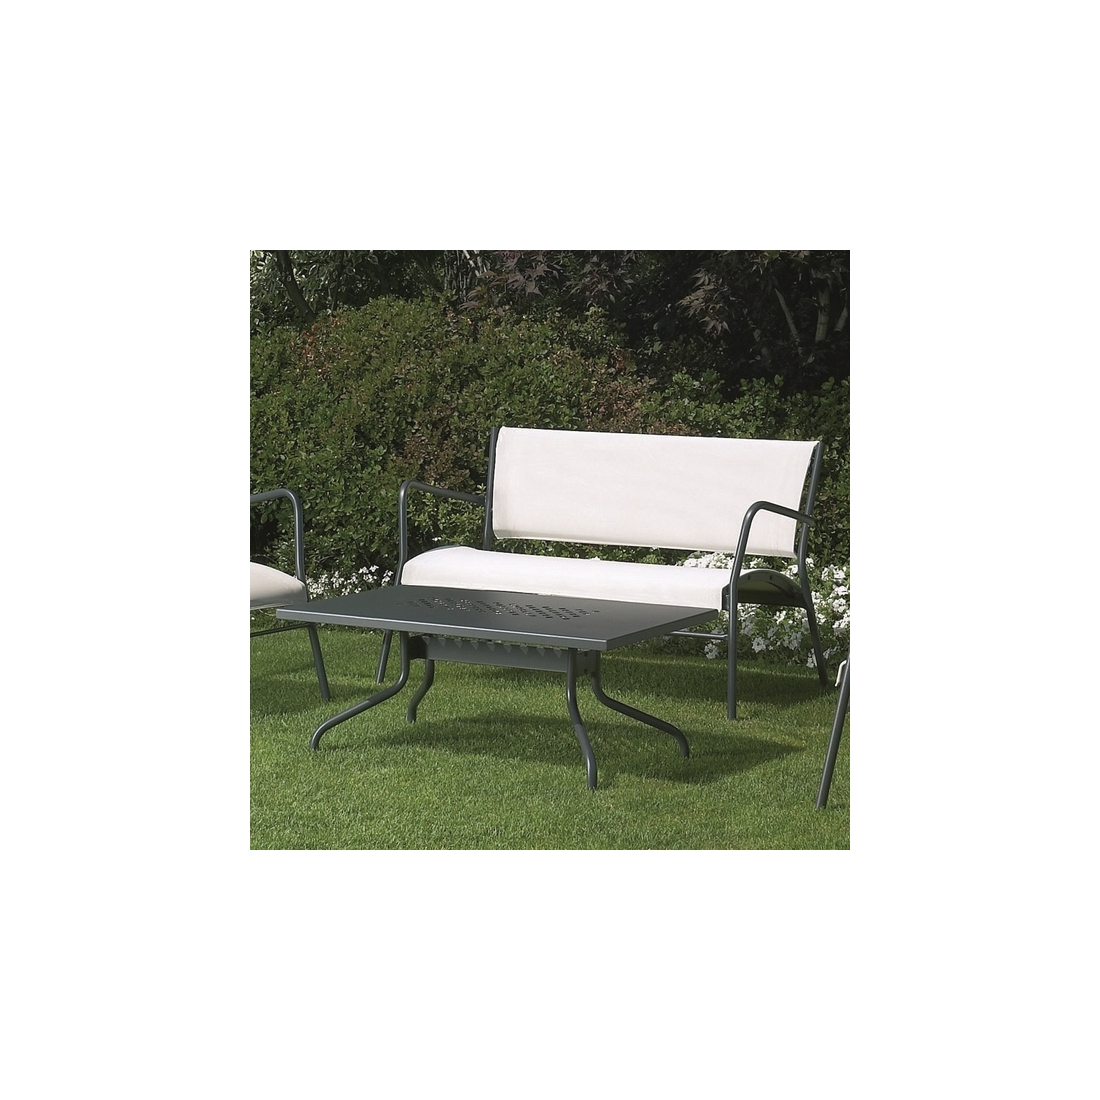 Table basse jardin truffaut for Truffaut mobilier de jardin